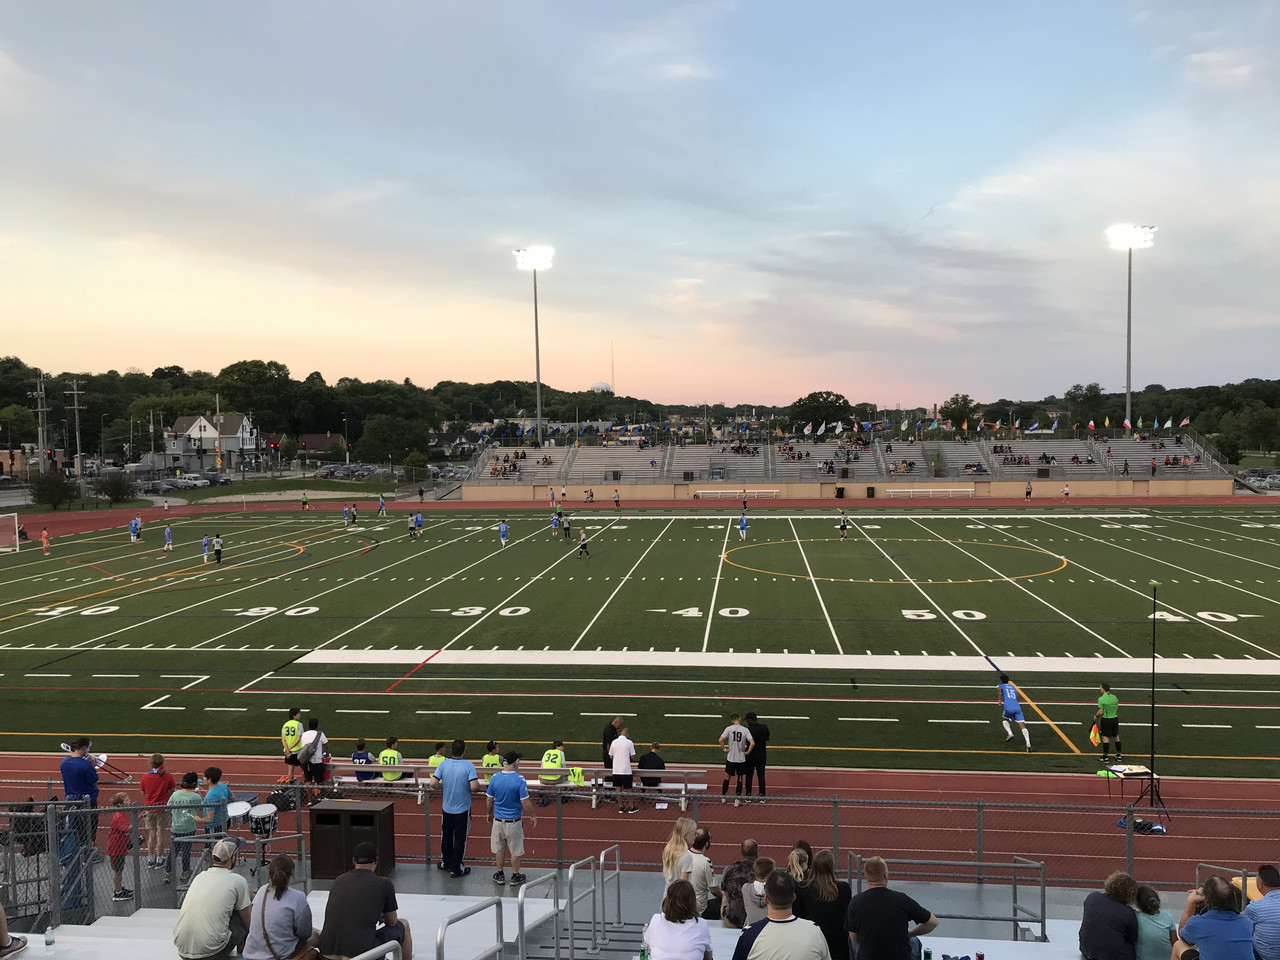 Milwaukee Torrent 2-0 Chicago House AC: The House loses their first game in club history